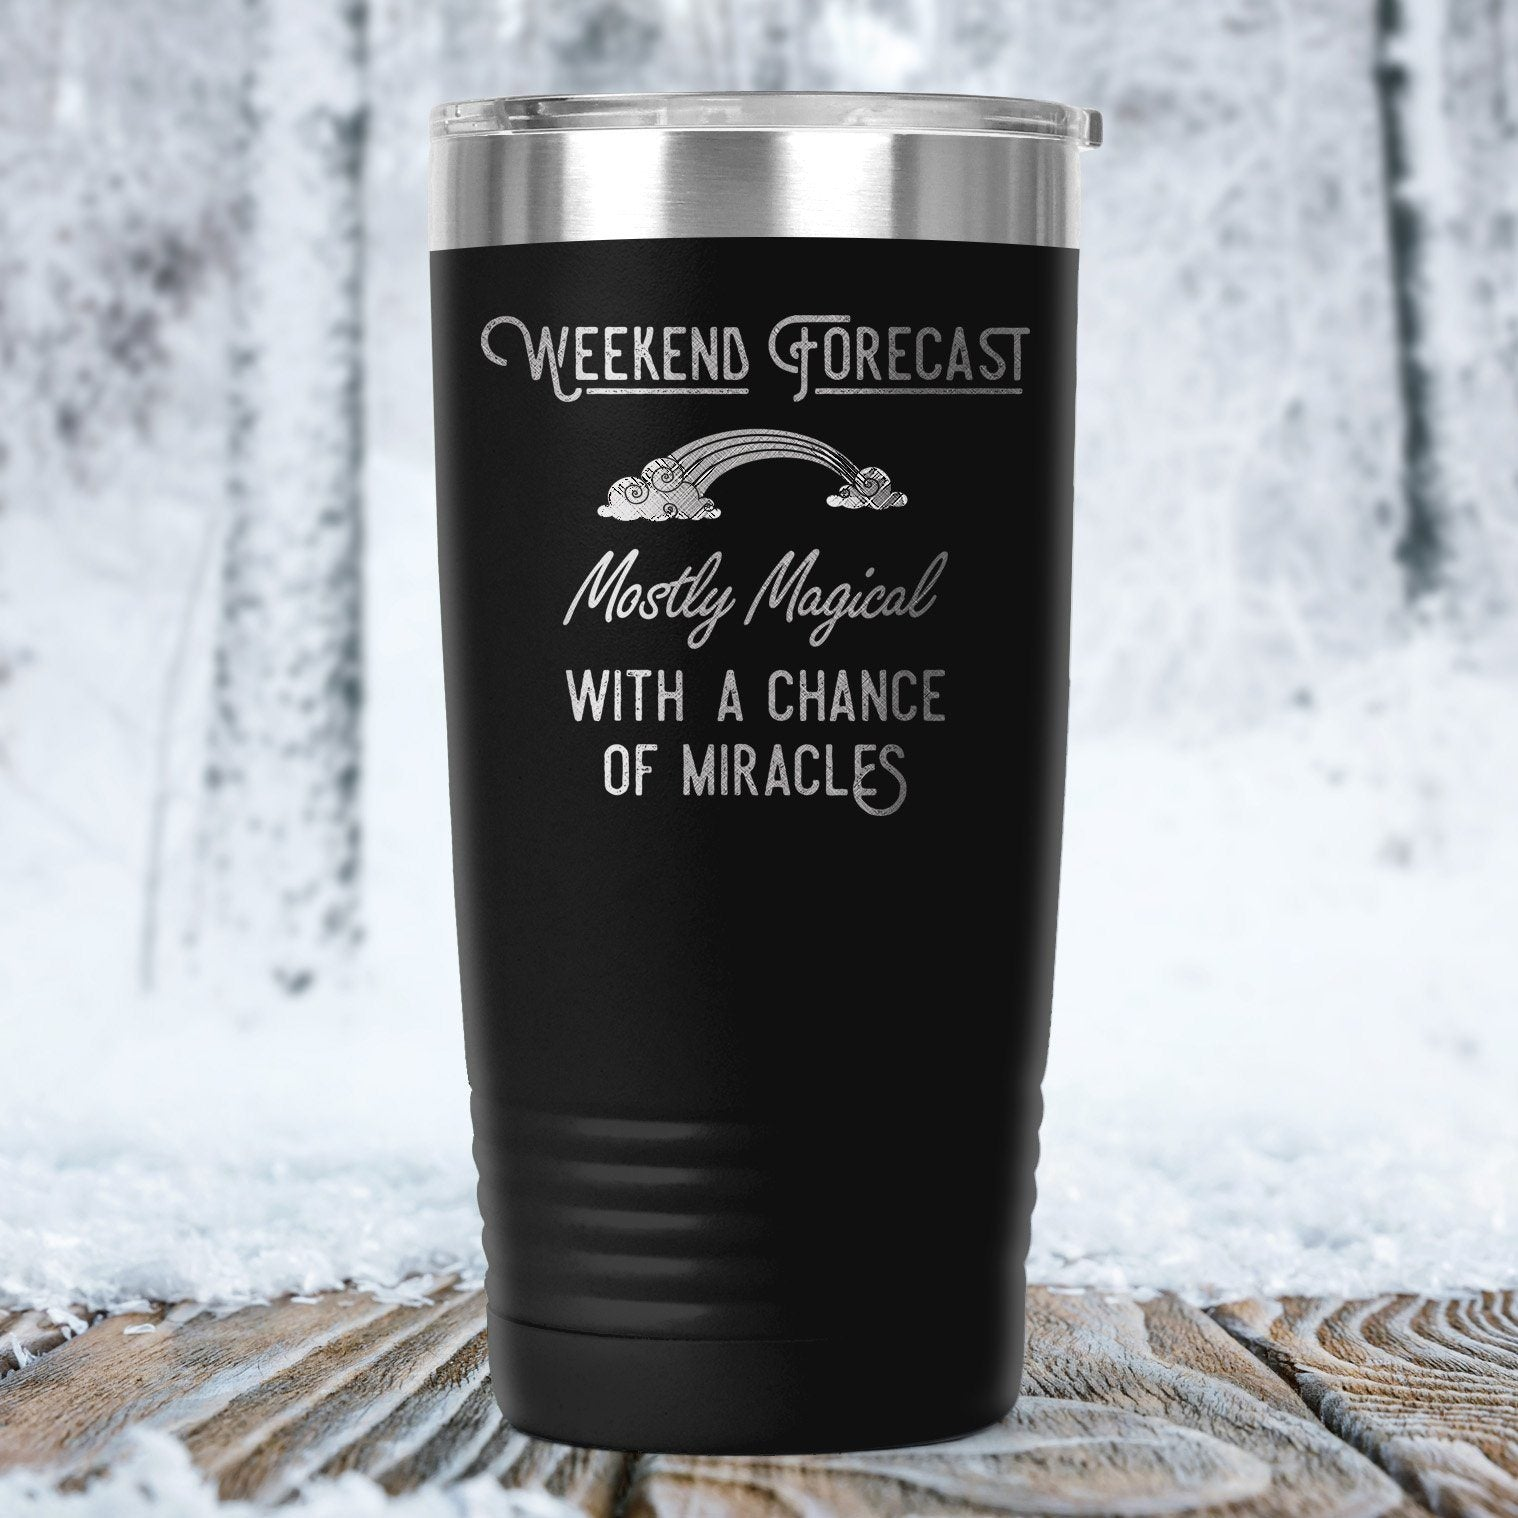 Weekend Forecast: Mostly Magical with a Chance of Miracles Travel Coffee Mug, Insulated Mug, To go Mug Tumblers teelaunch